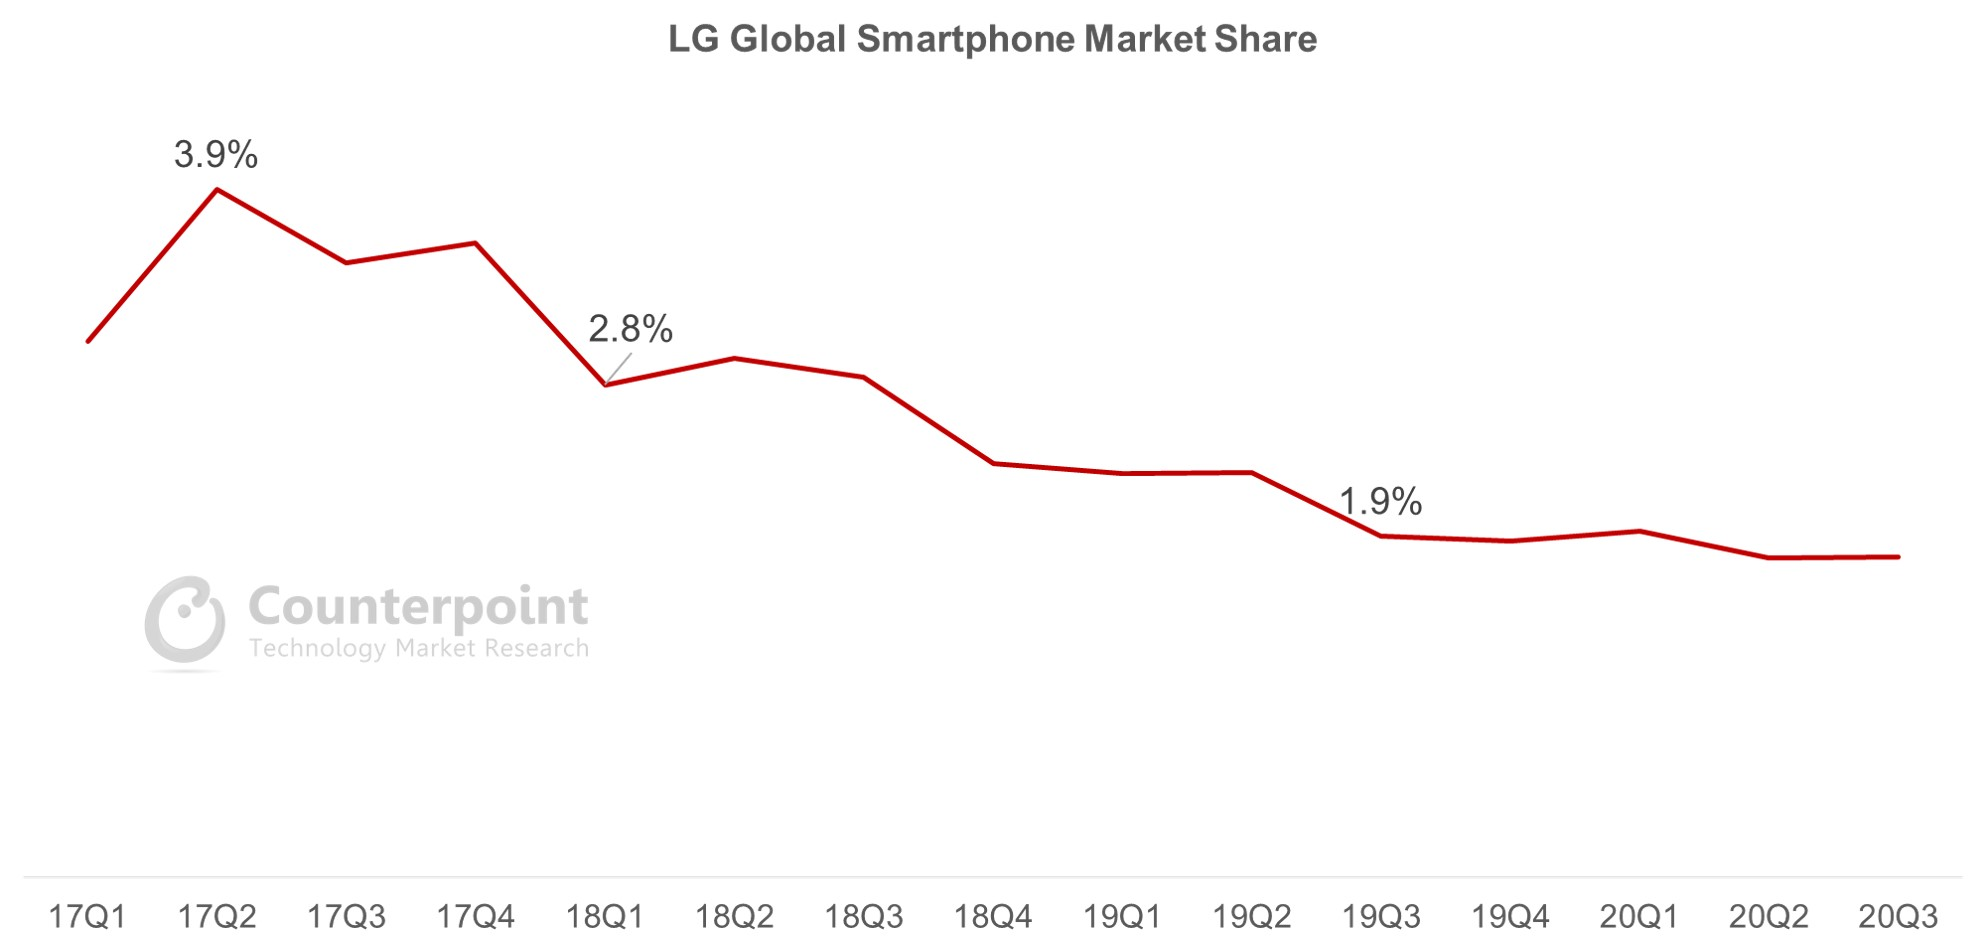 Counterpoint Research LG Global Smartphone Market Share